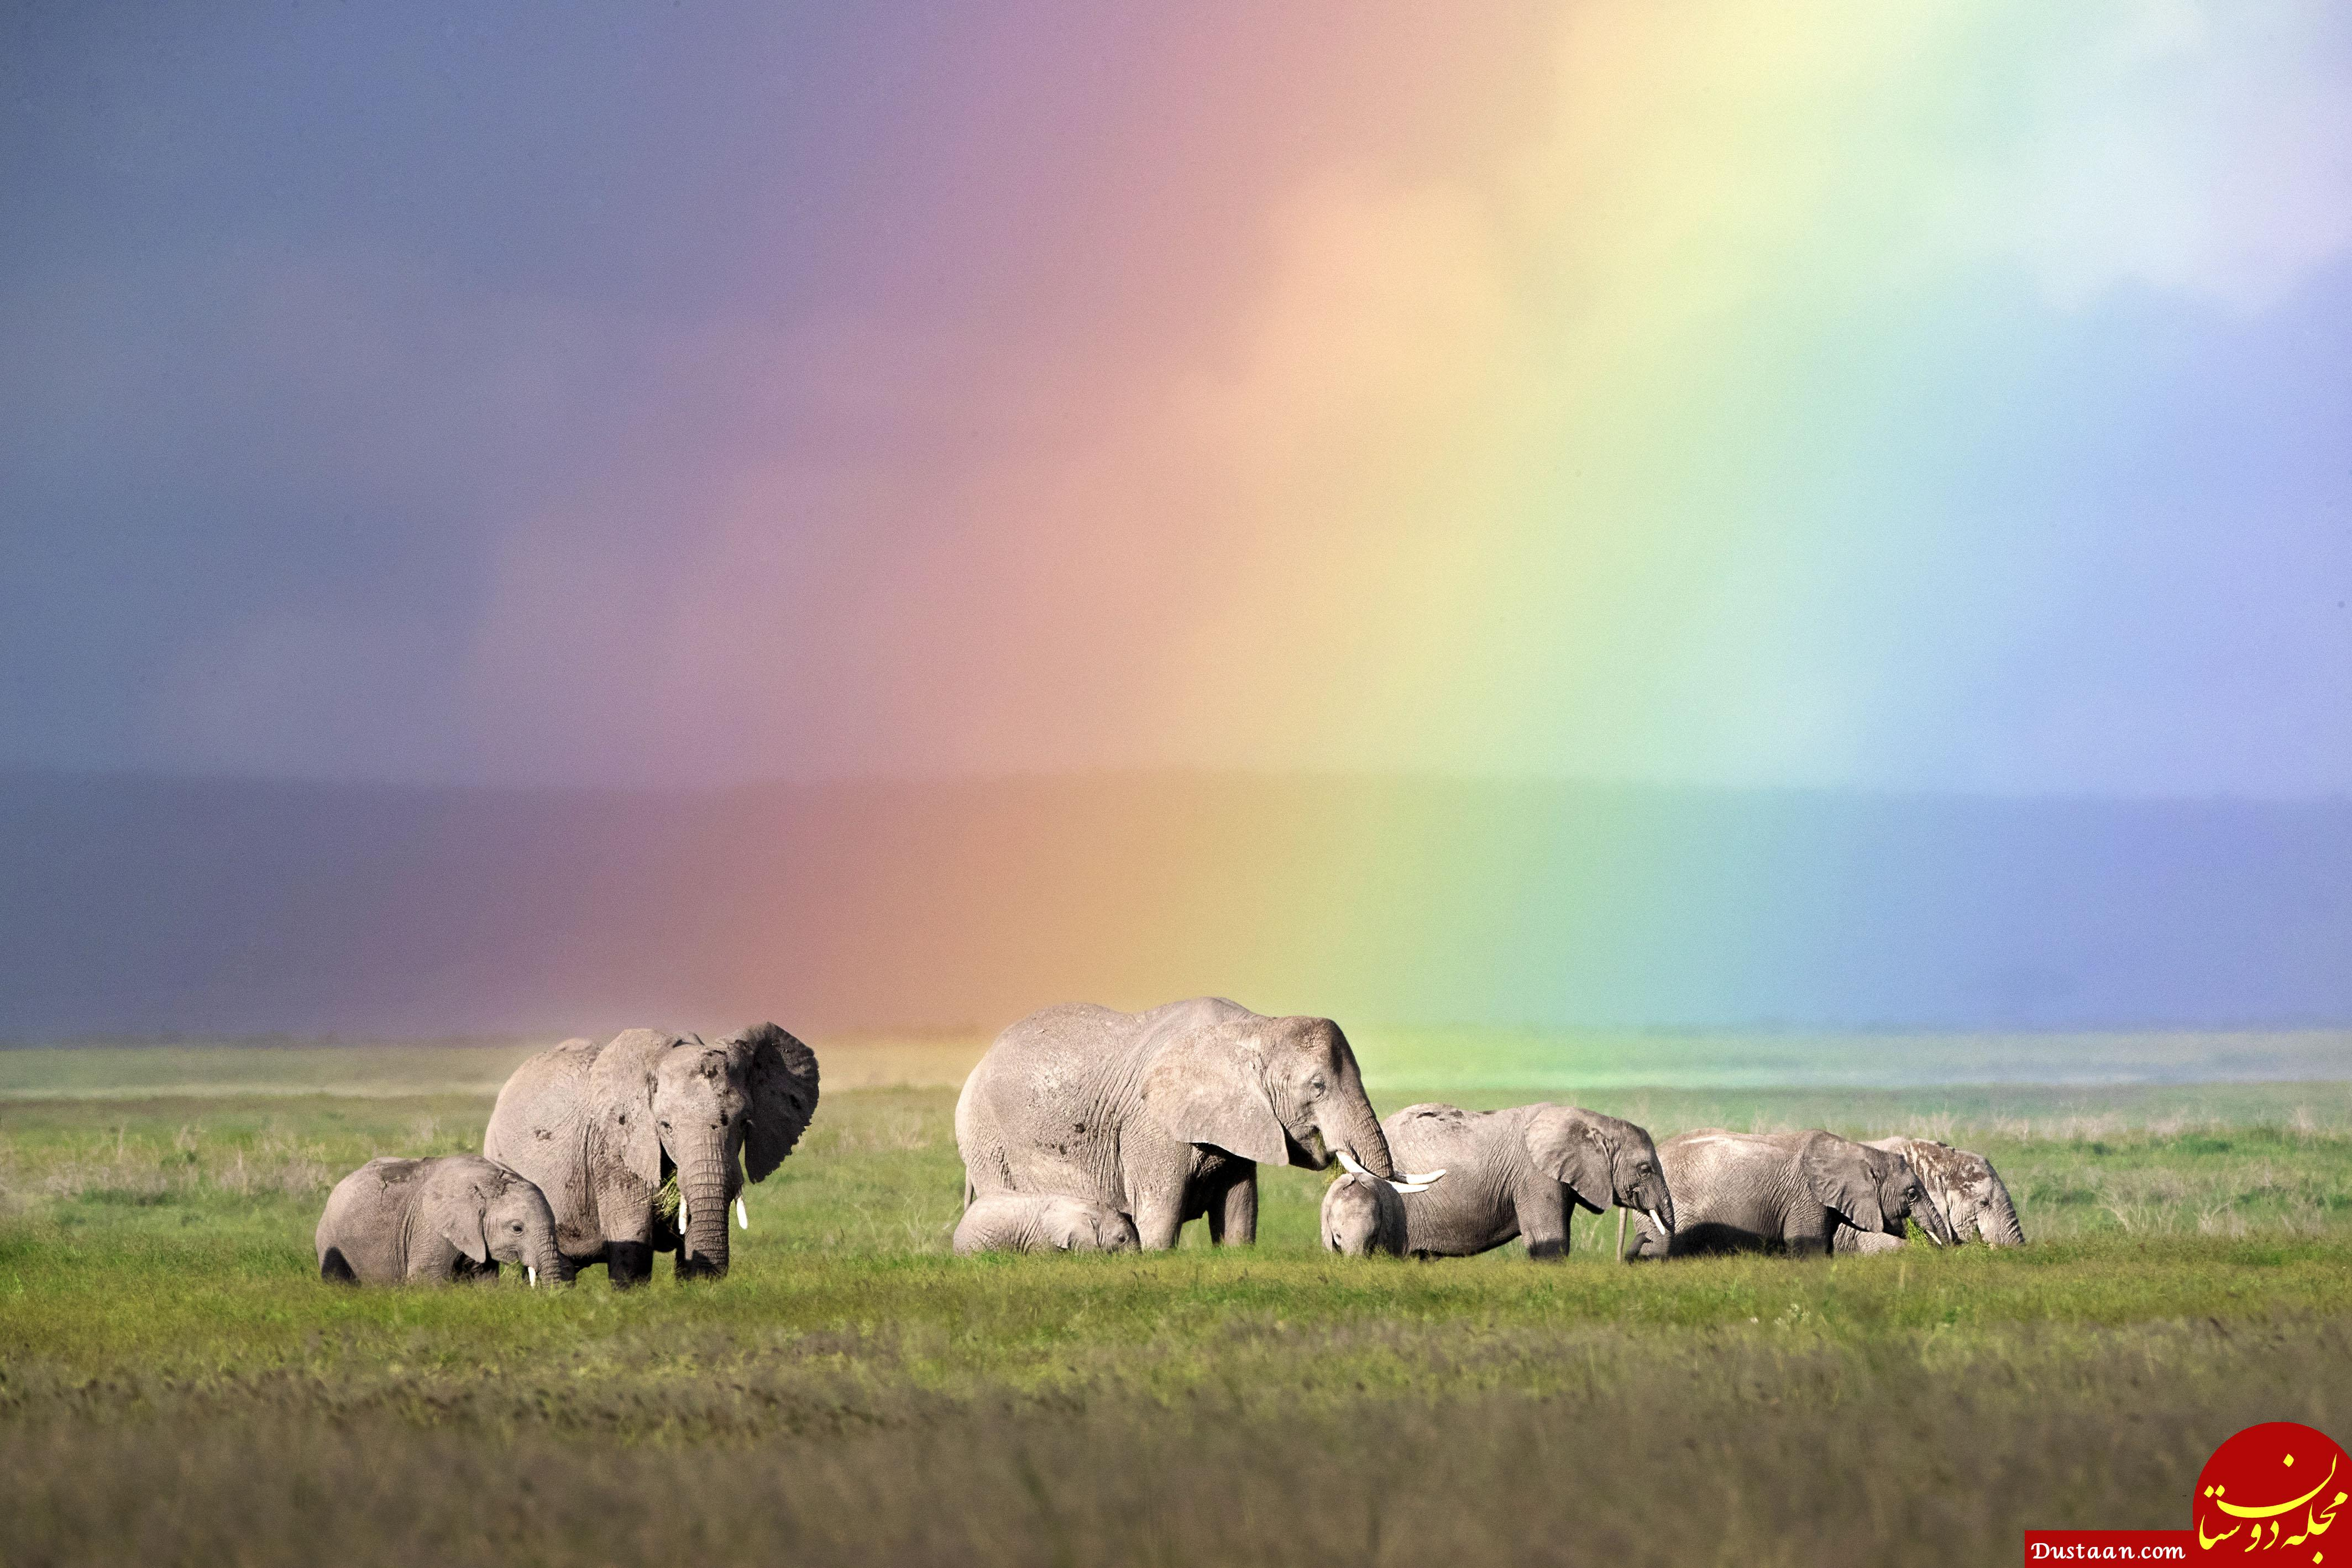 https://www.catersnews.com/wp-content/uploads/2018/07/0_CATERS_elephants_and_rainbows_001.jpg